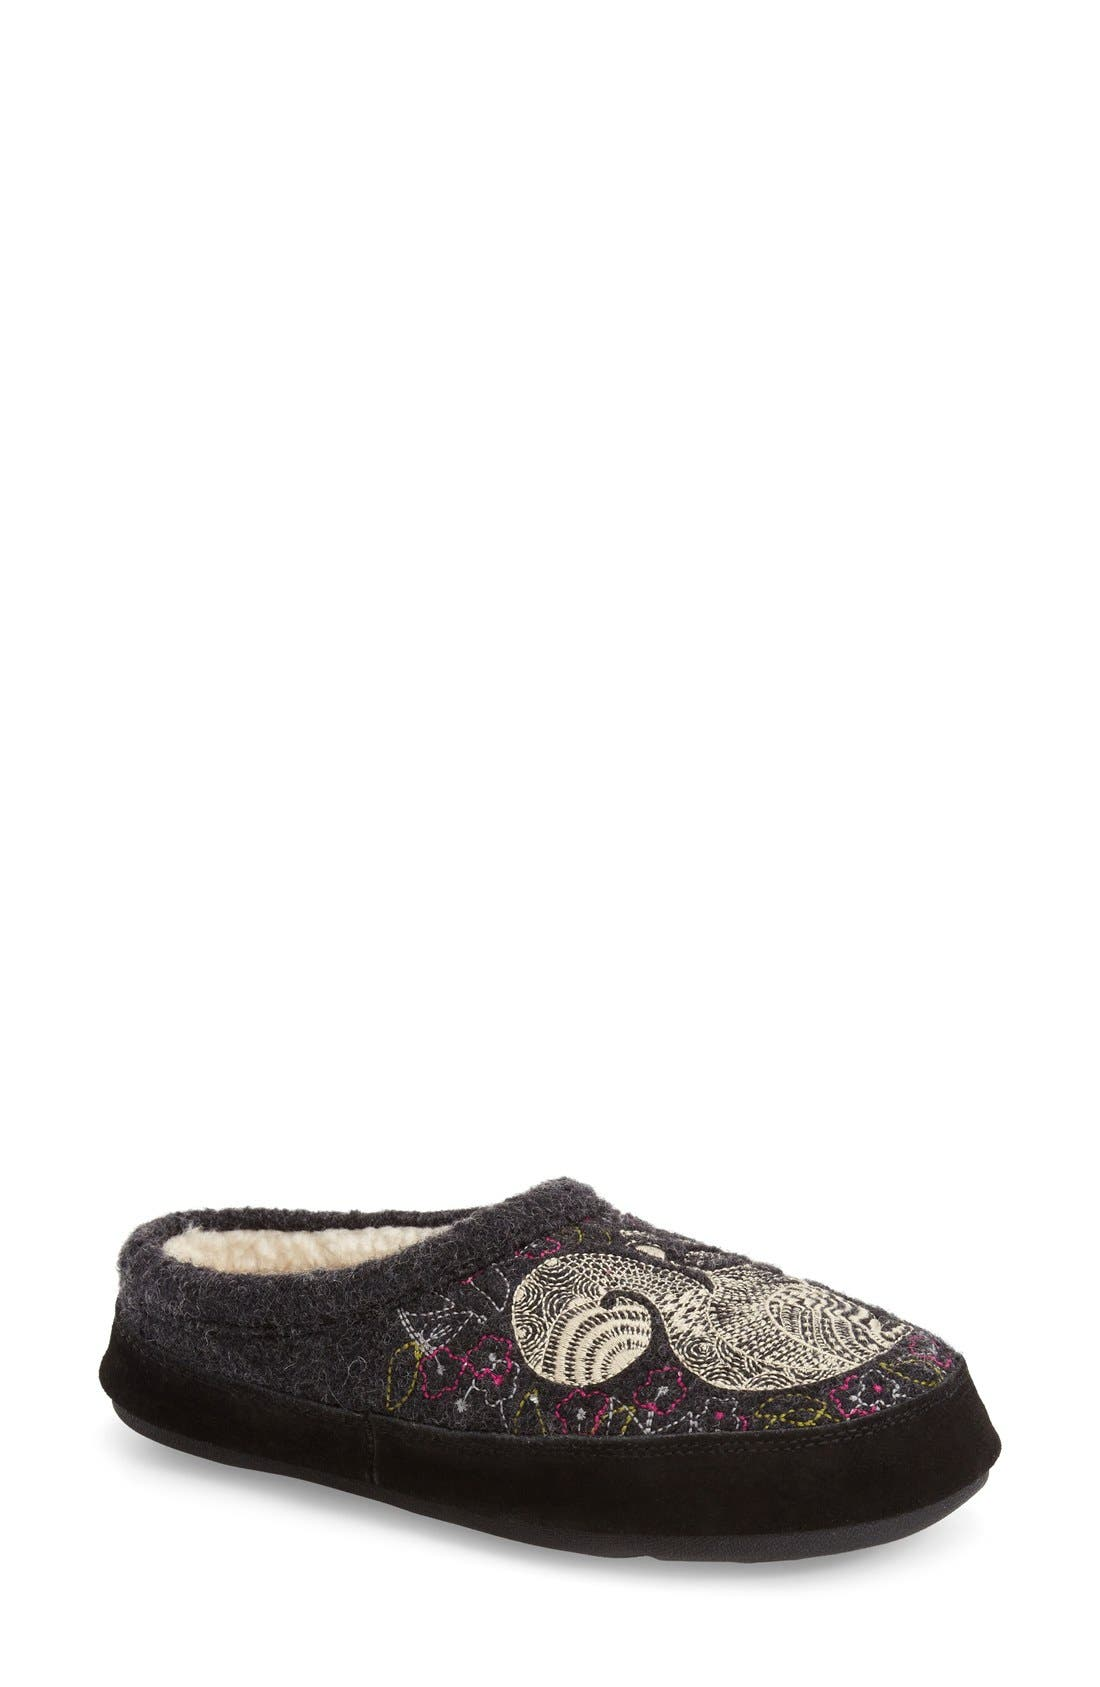 'Forest' Wool Mule Slipper,                             Main thumbnail 2, color,